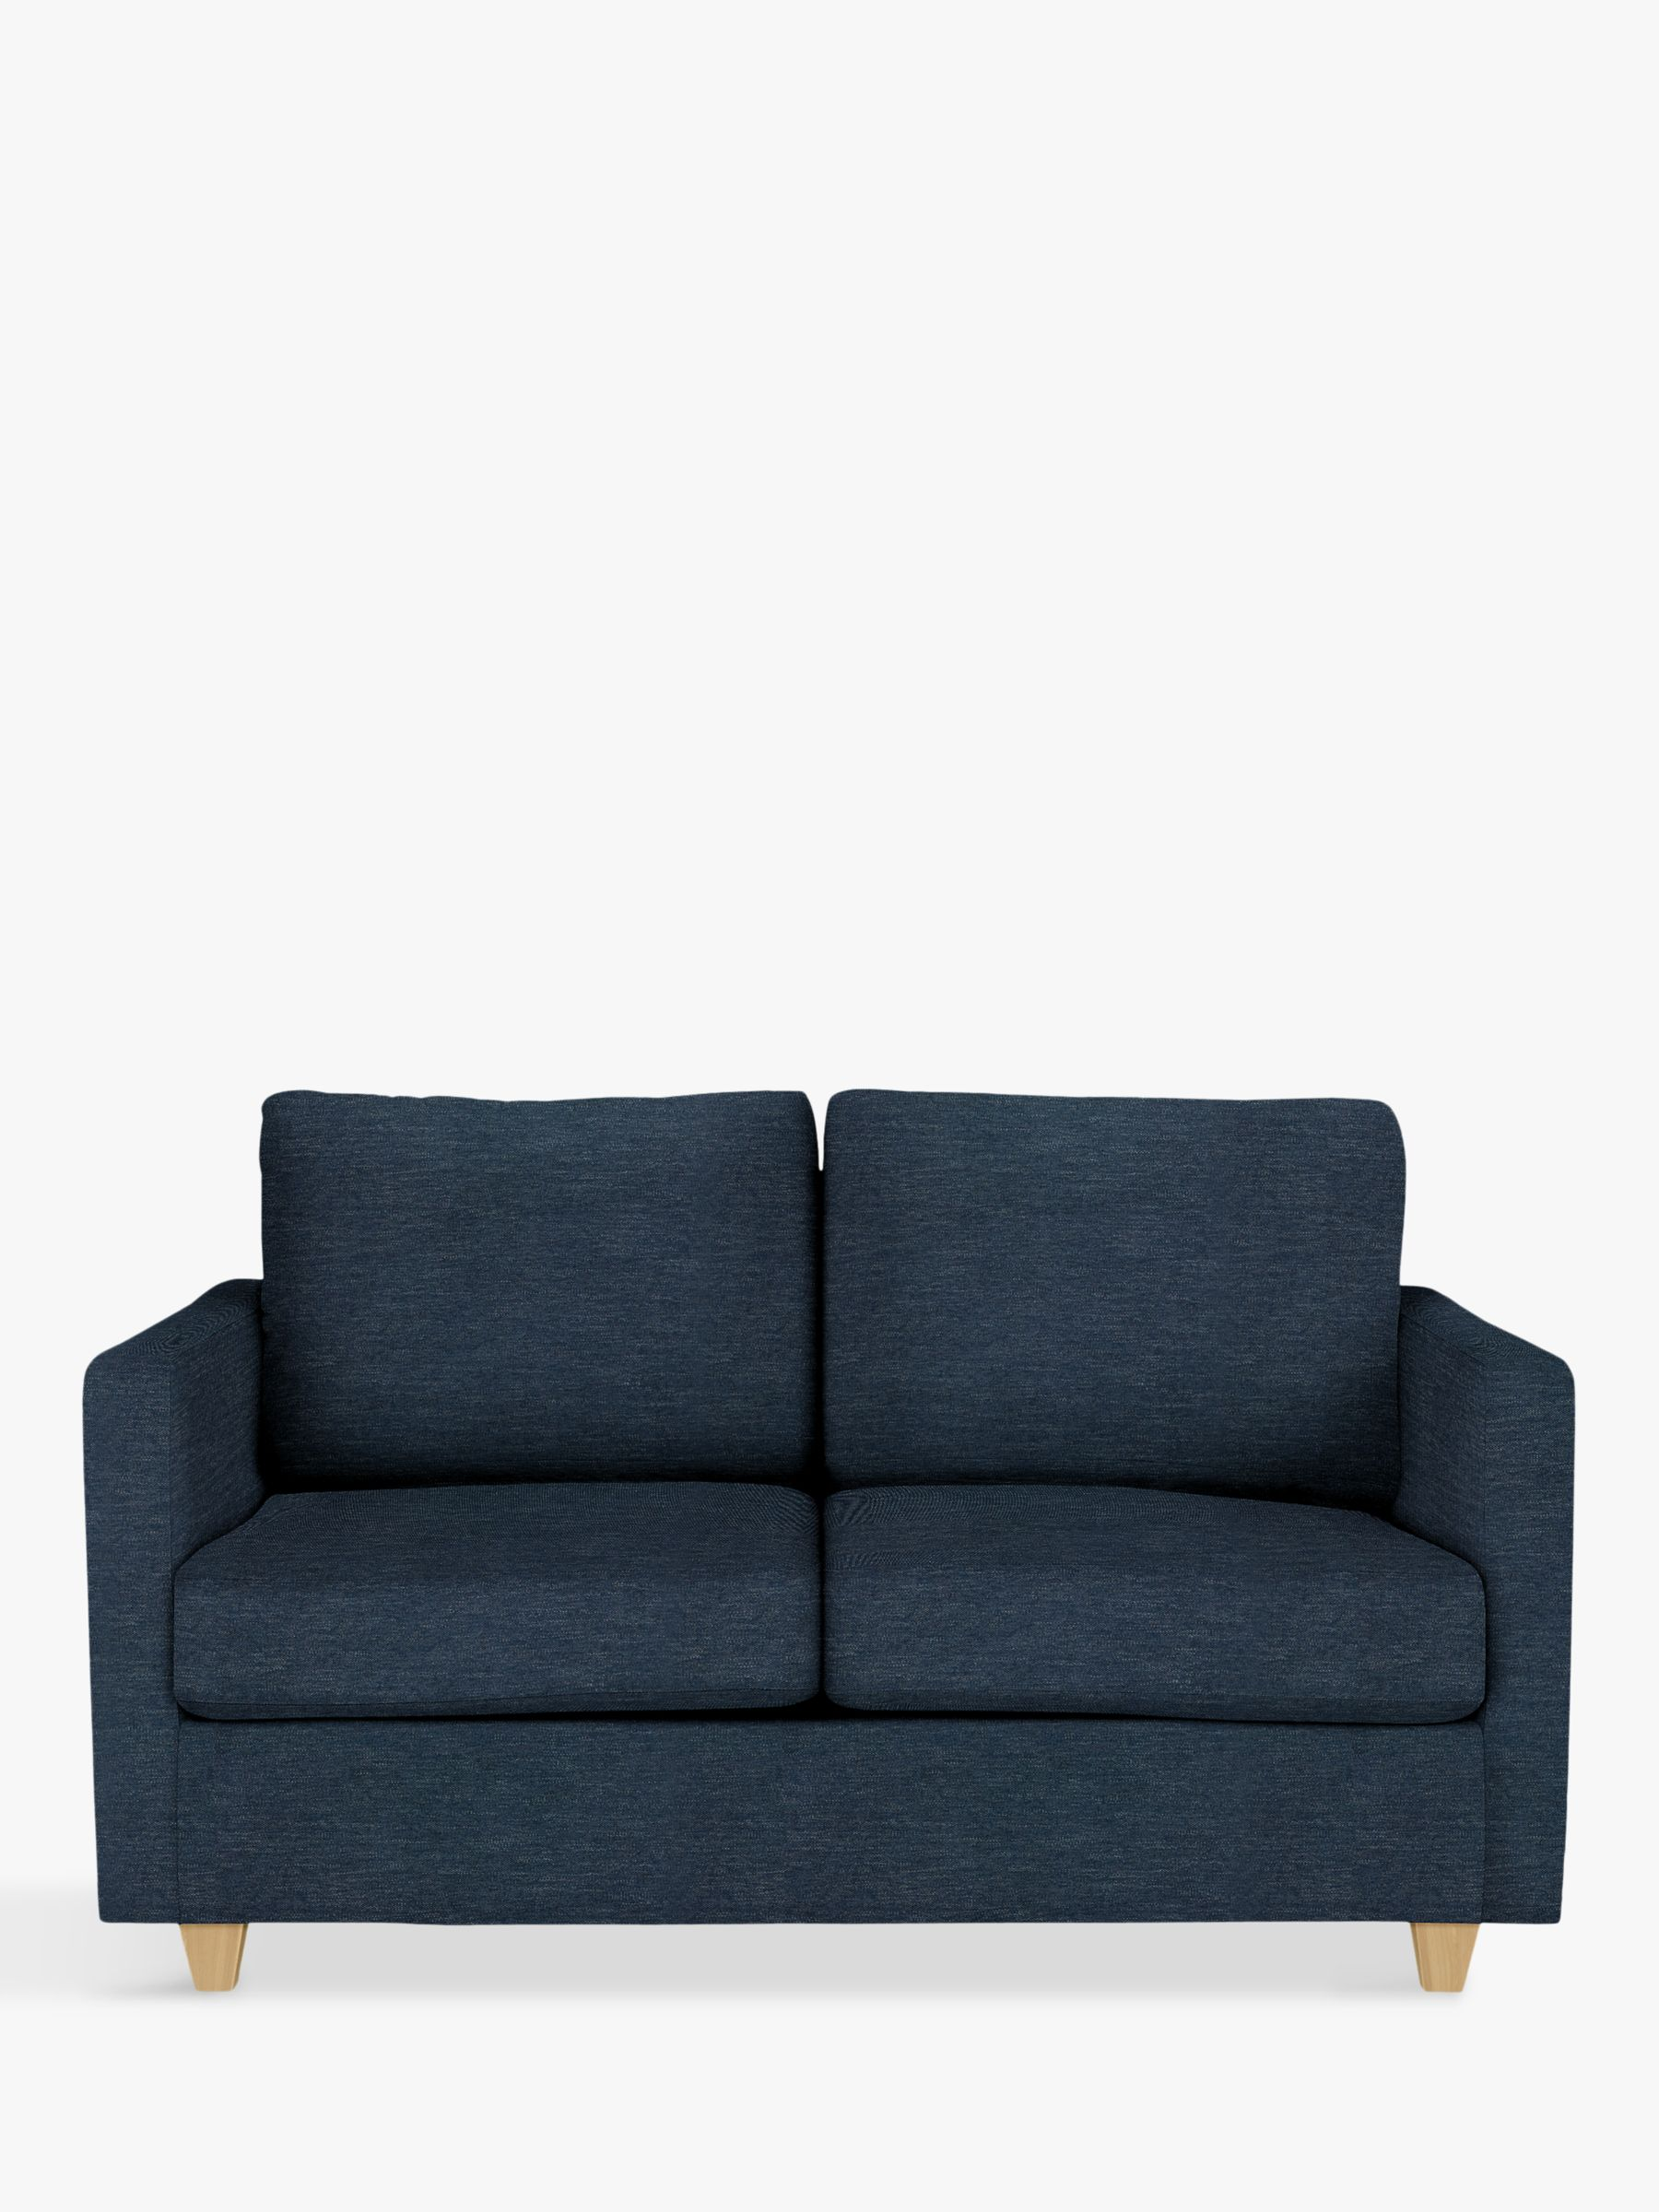 Buy John Lewis Barlow 2 Seater Small Sofa Bed with Pocket Sprung